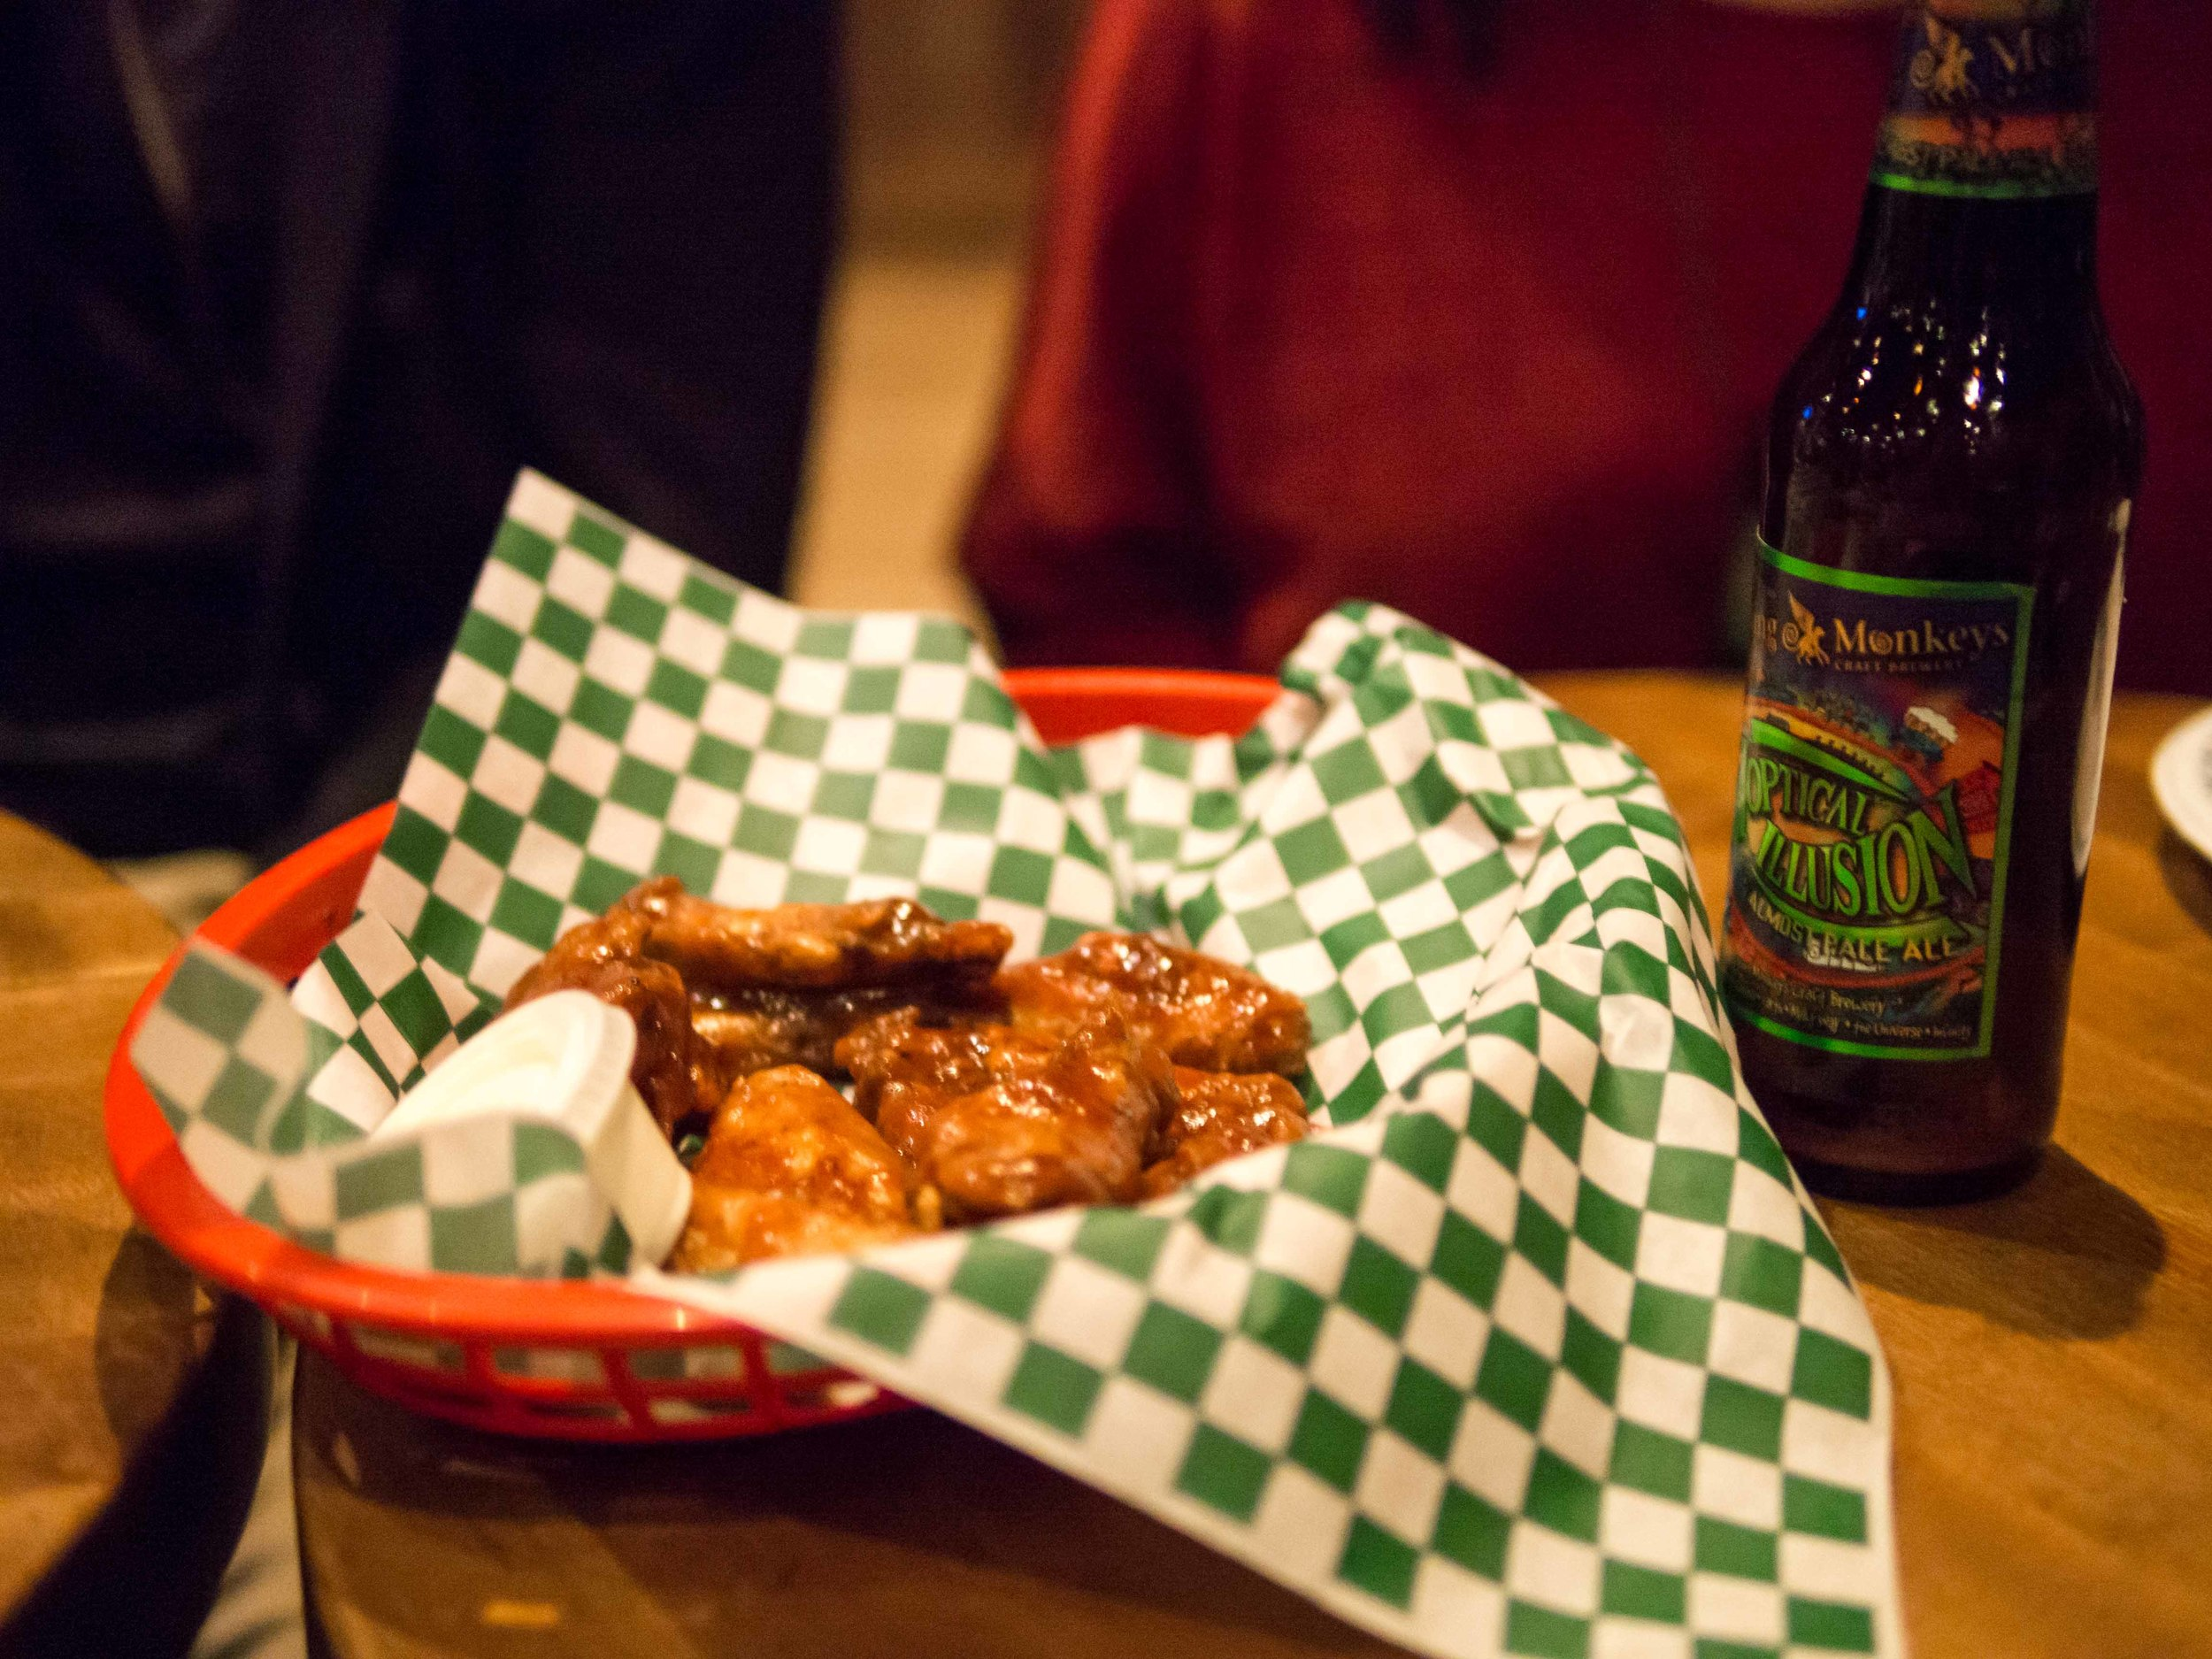 A $7.00 serving of Storehouse wings.